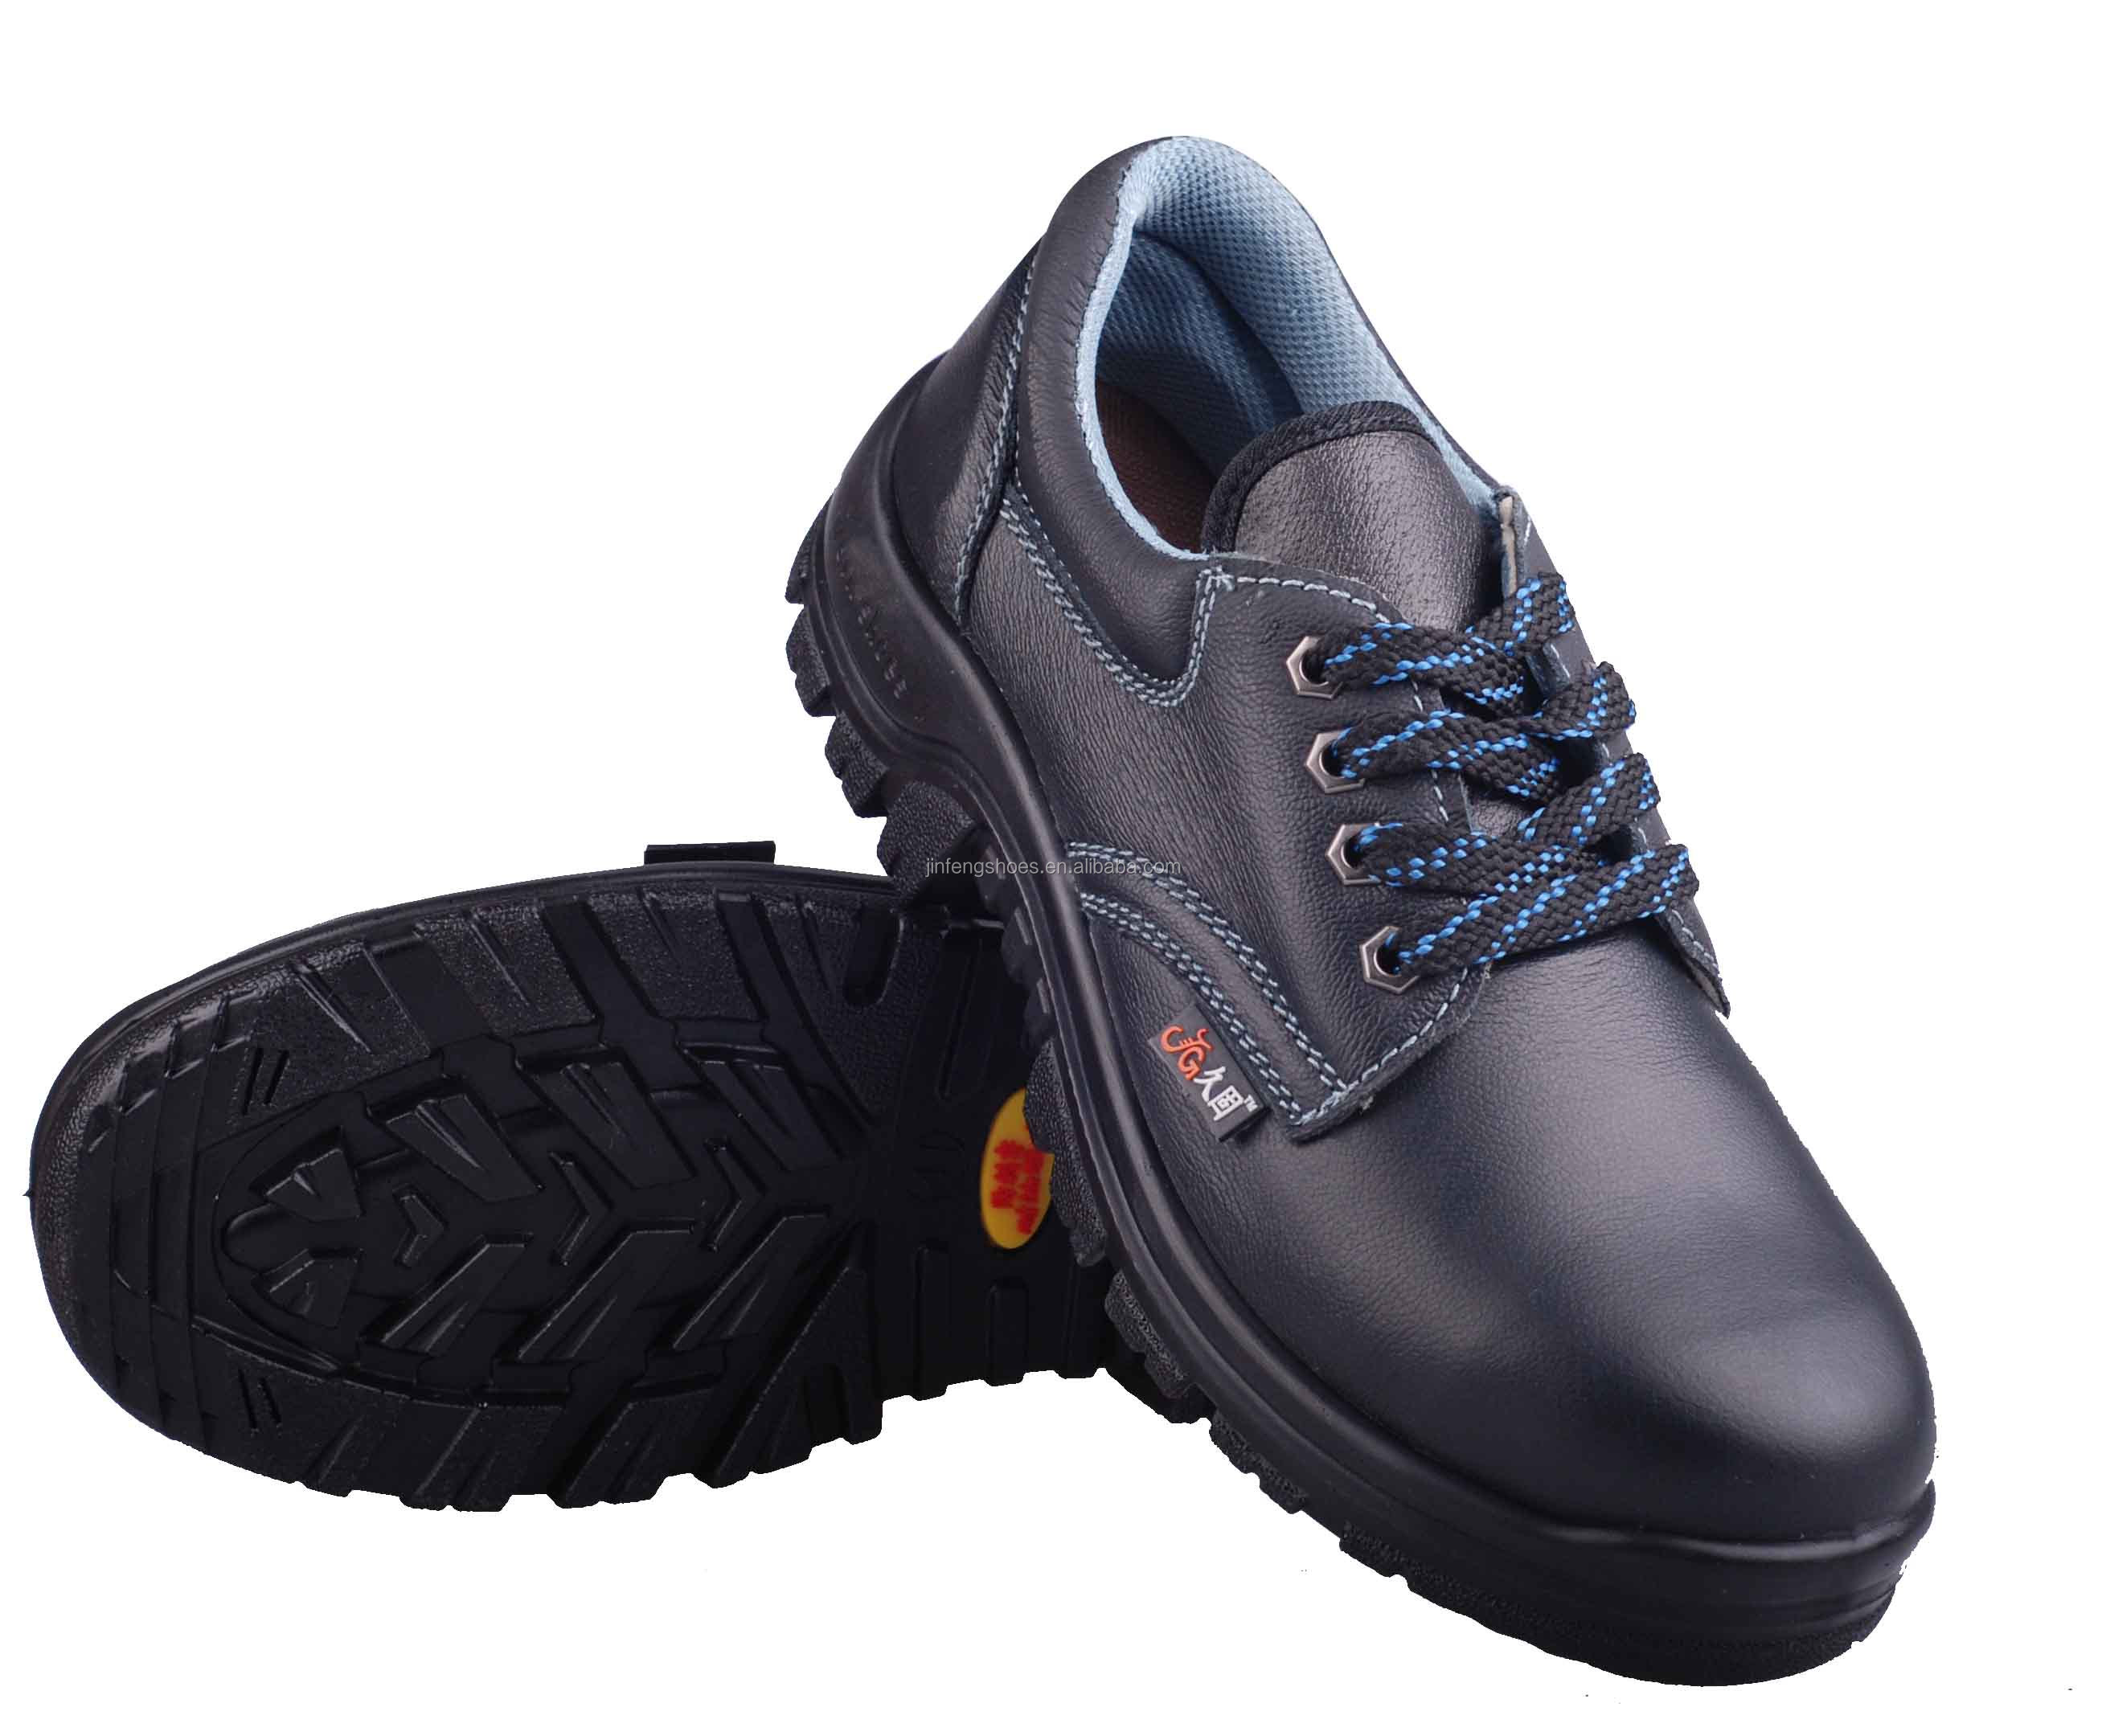 steel toe safety shoes cheap   OFF55% The Largest Catalog Discounts ad04f677e